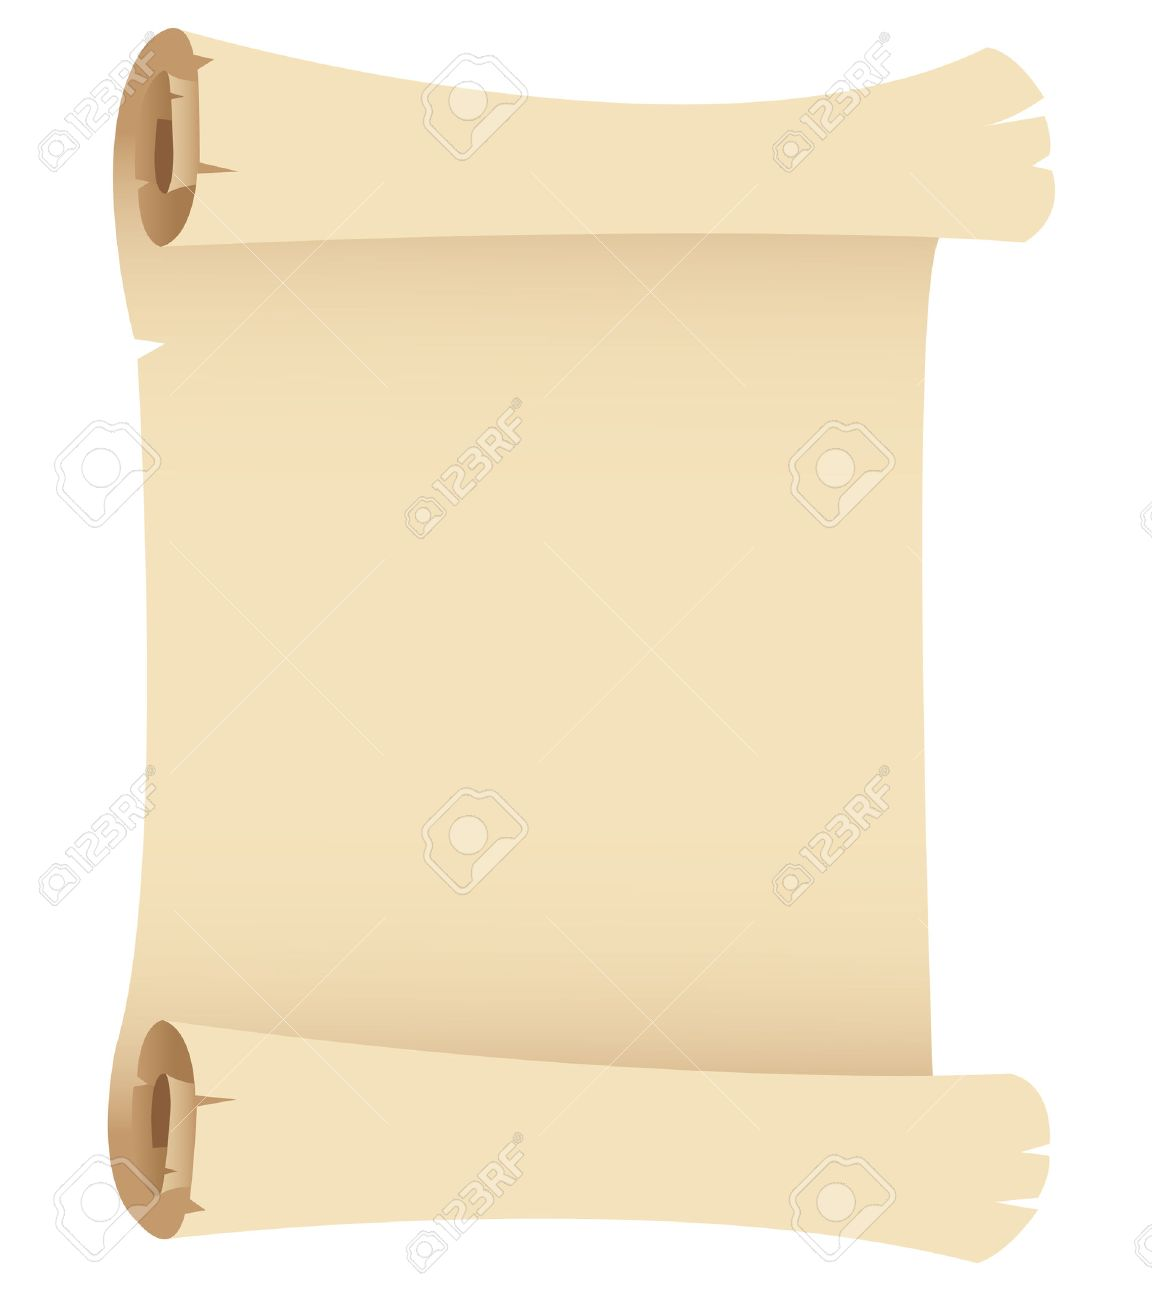 Illustration of Old Paper Banner isolated on a white background - 23637996